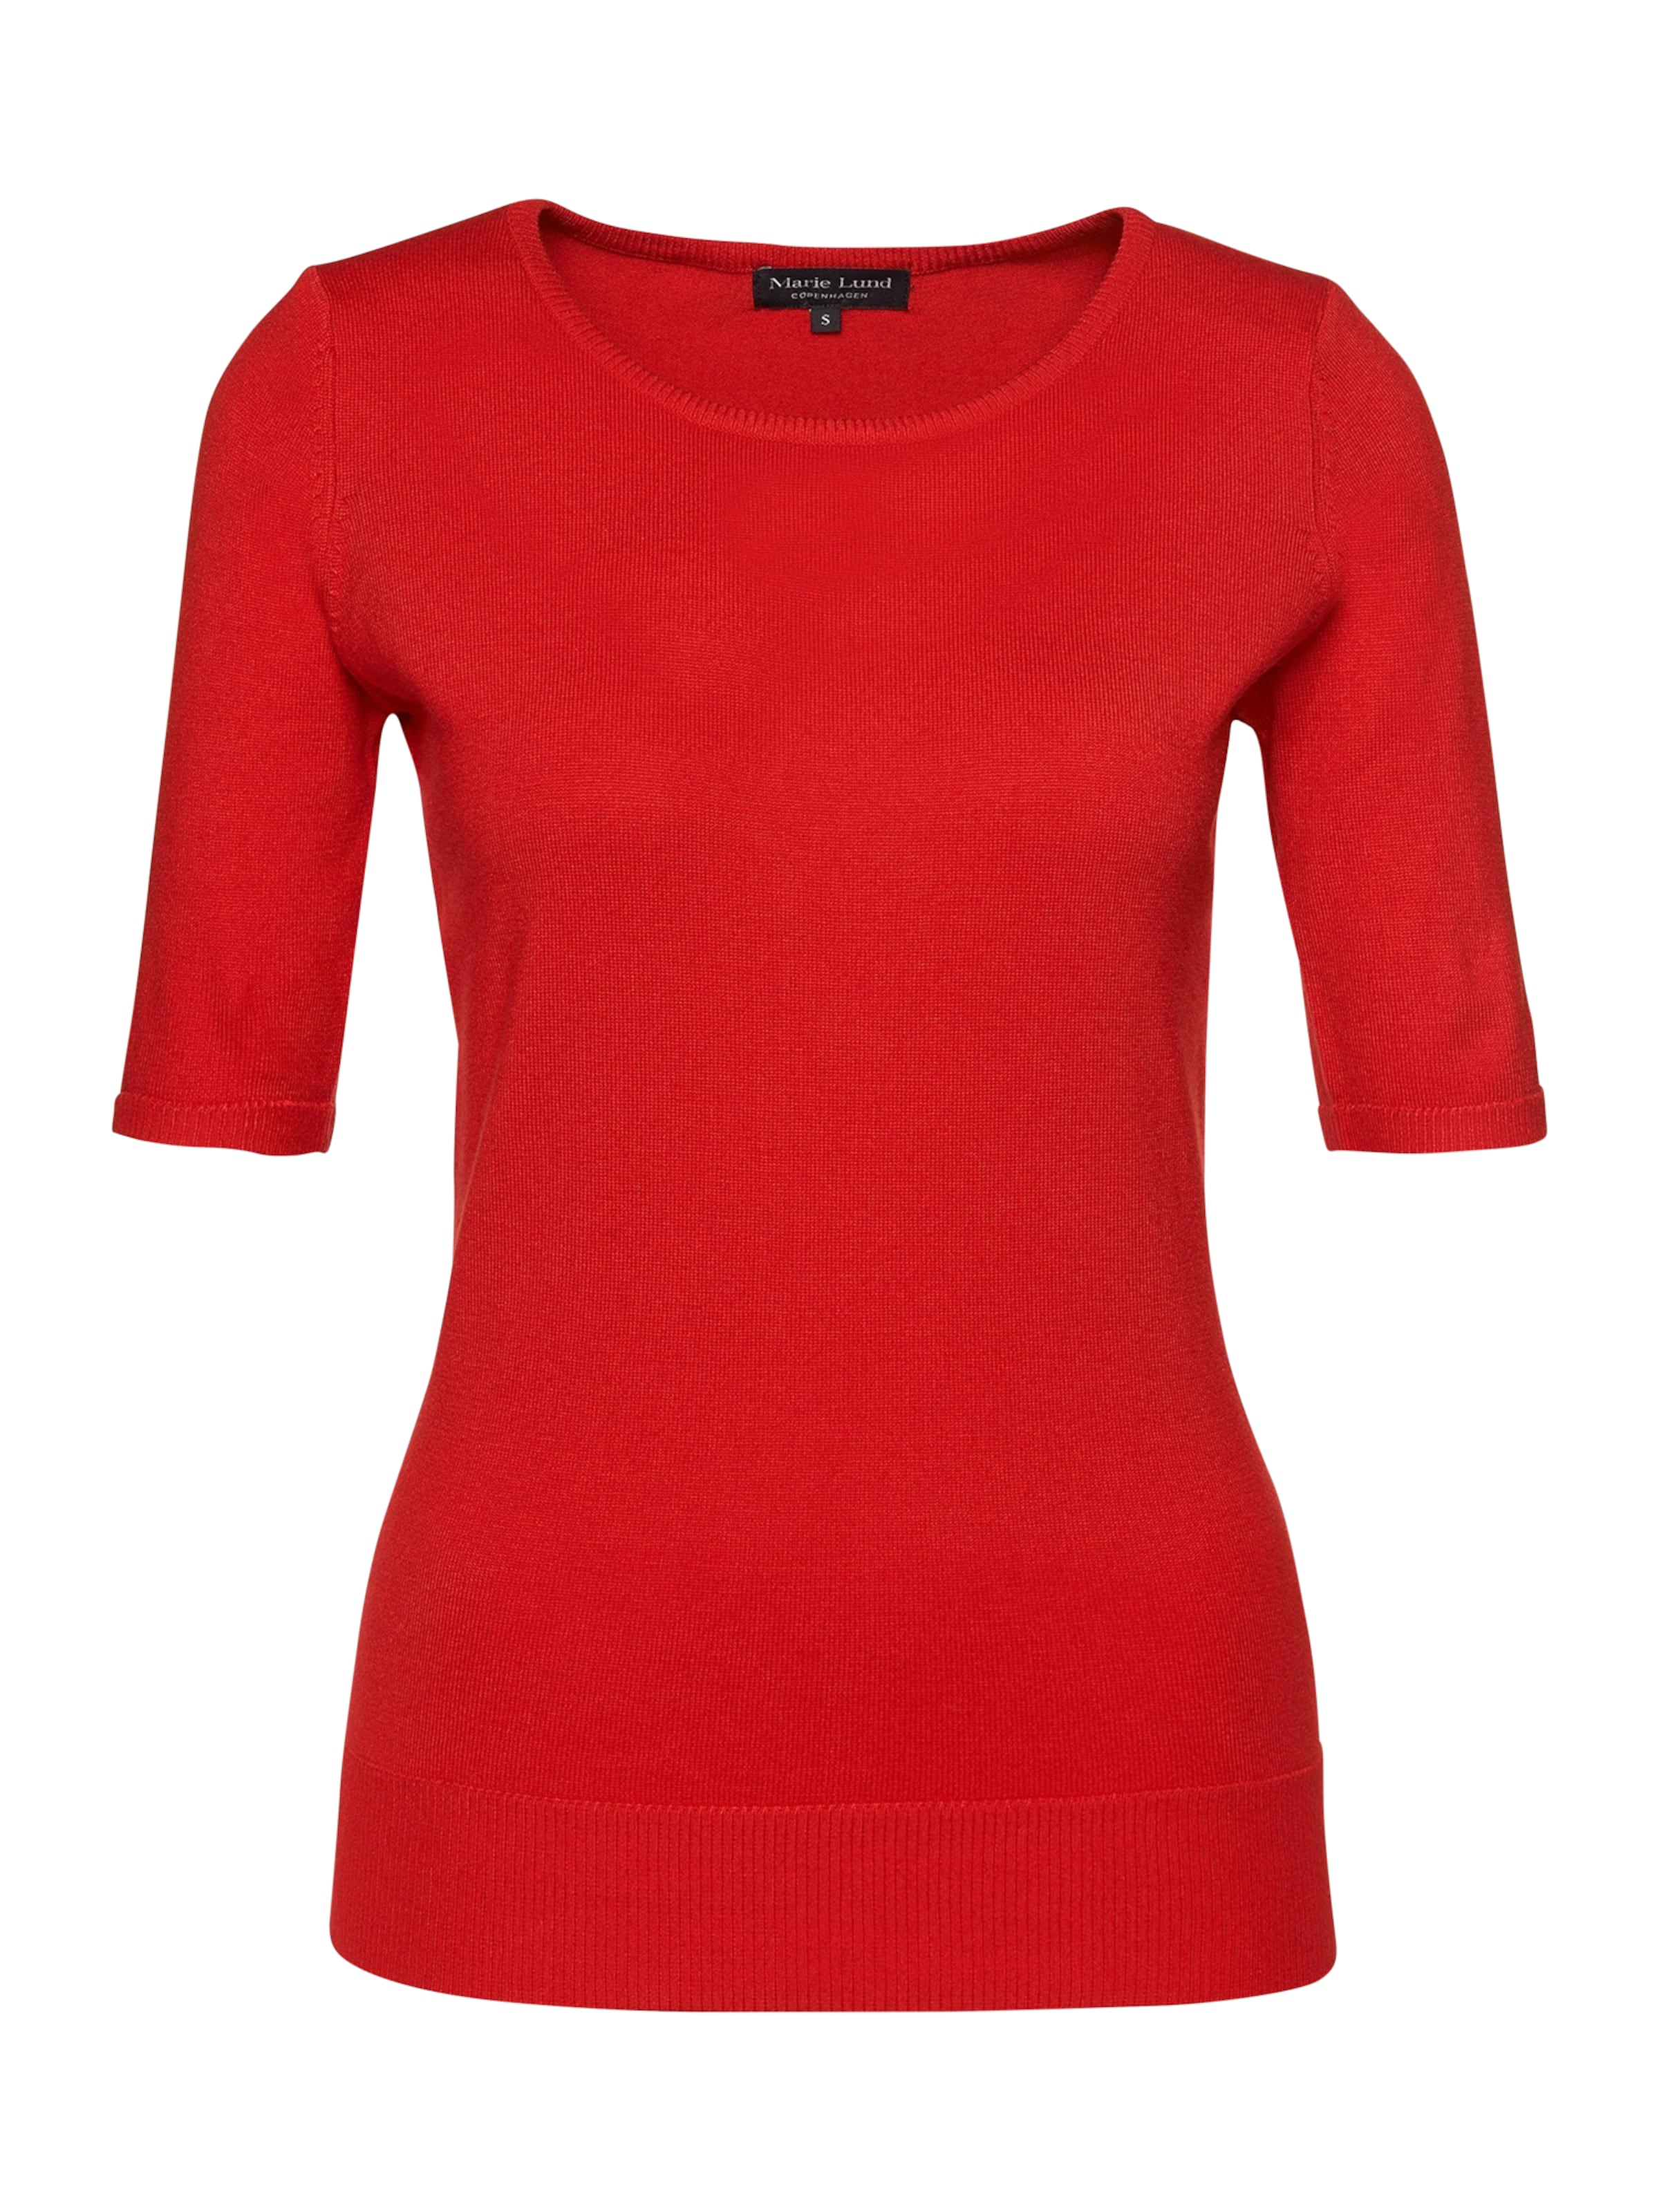 Pullover In Marie In Pullover Marie Rot Lund Pullover Lund In Lund Marie Rot nmvNy0O8w